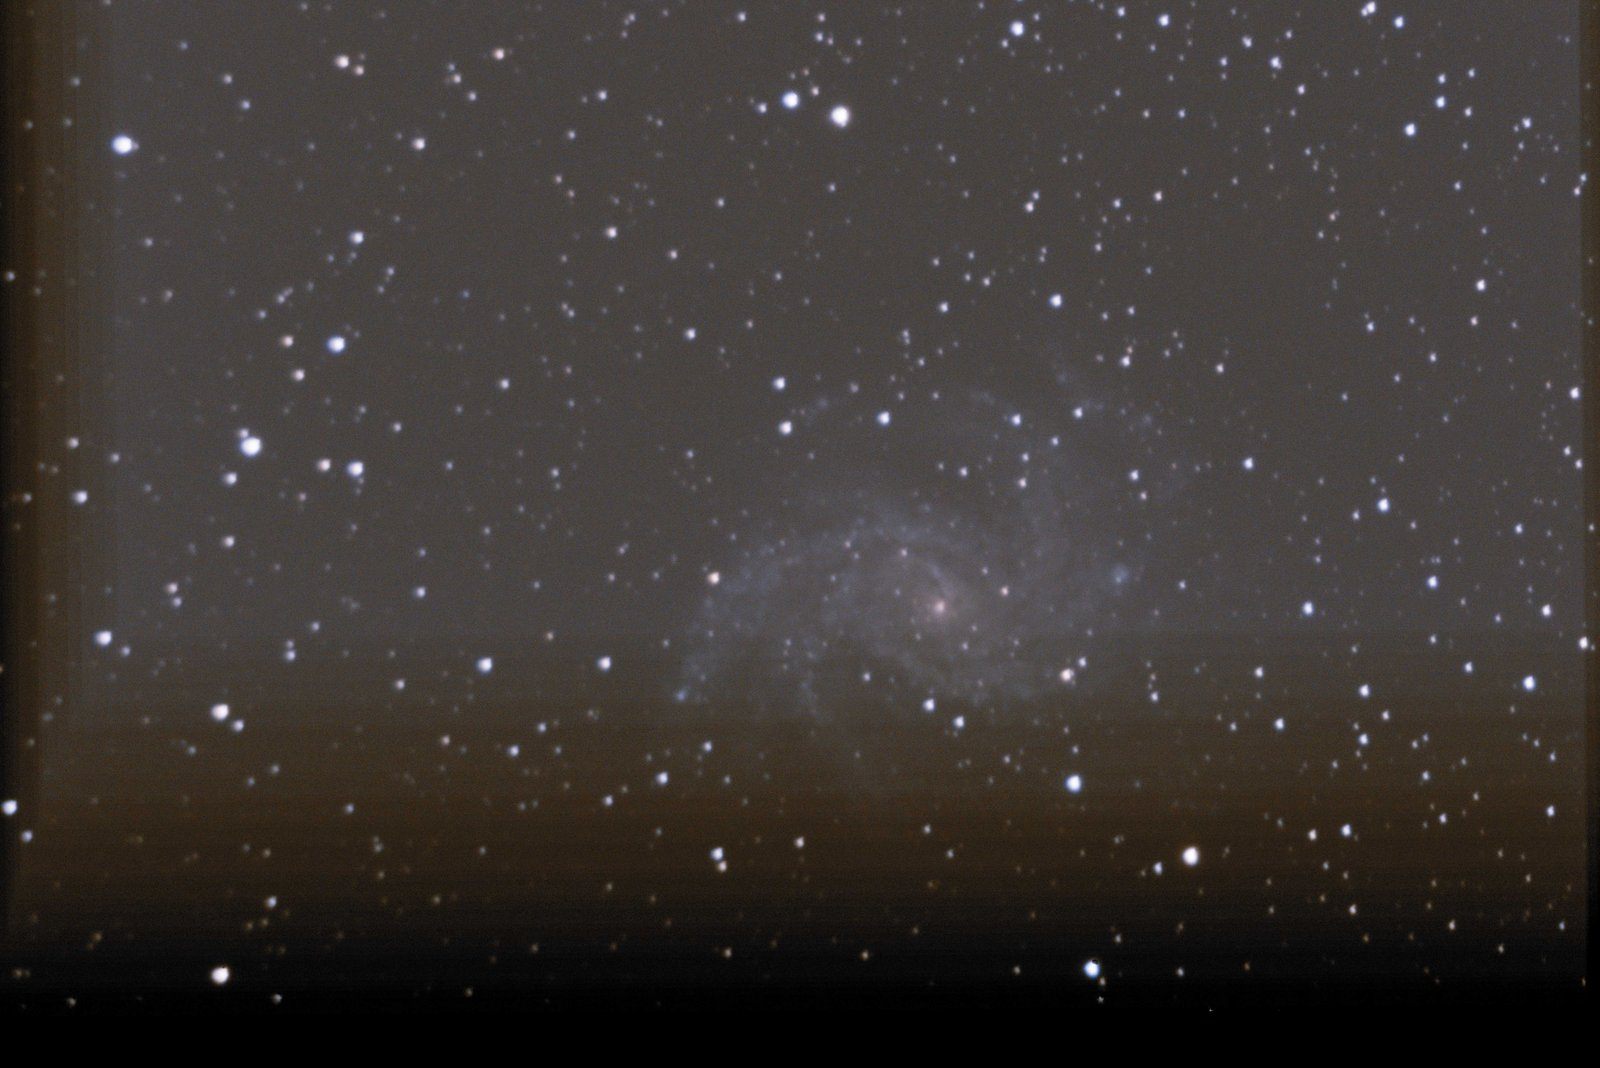 NGc 6946 first essaie